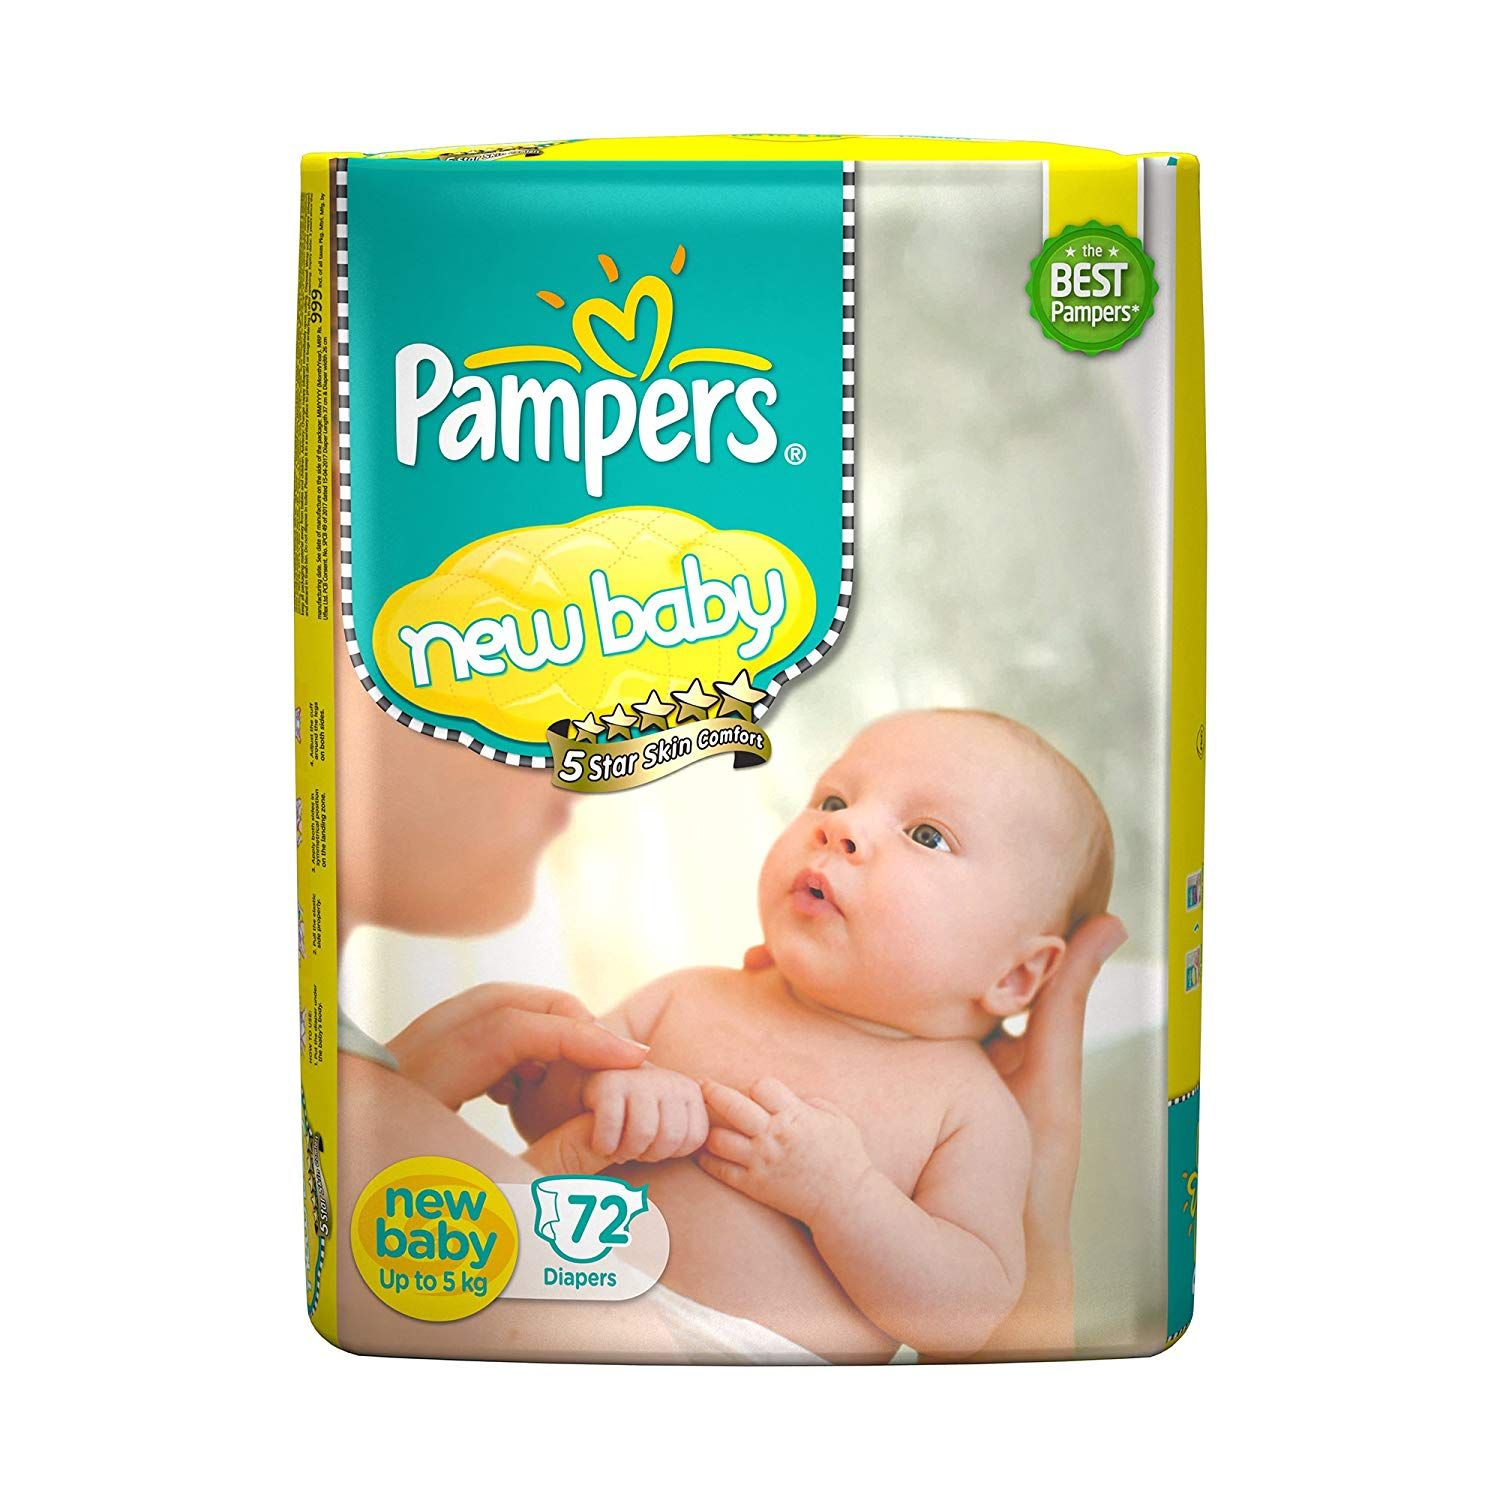 5 Star Skin Protection The Best Tape Style Diapers From Pampers With An Outer Layer Of Cotton Like Softnes Baby Diapers Baby Sensitive Skin New Baby Products